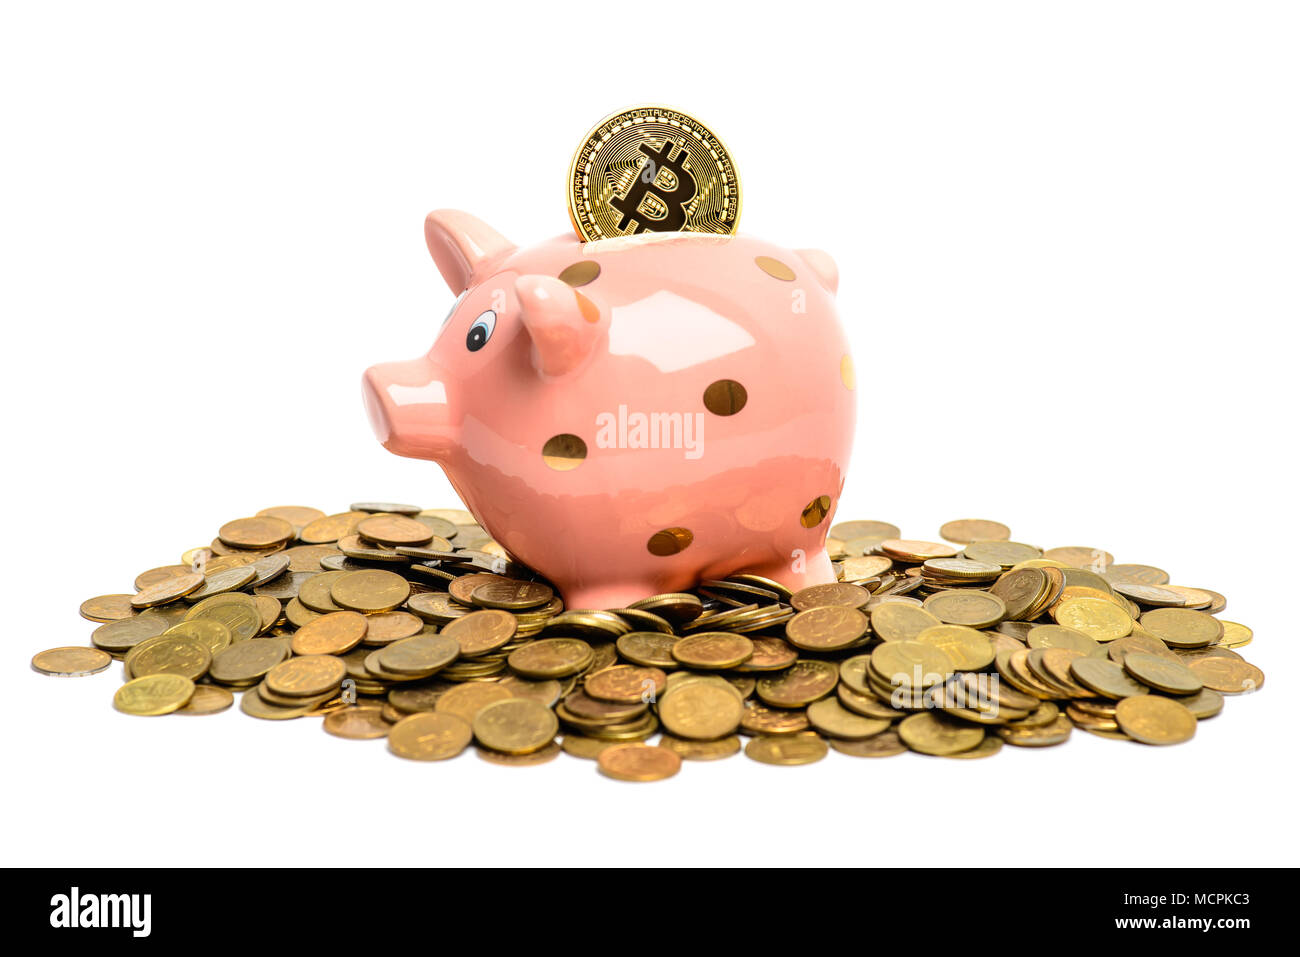 Pig coin bank on heap of money with bitcoin over white - Stock Image